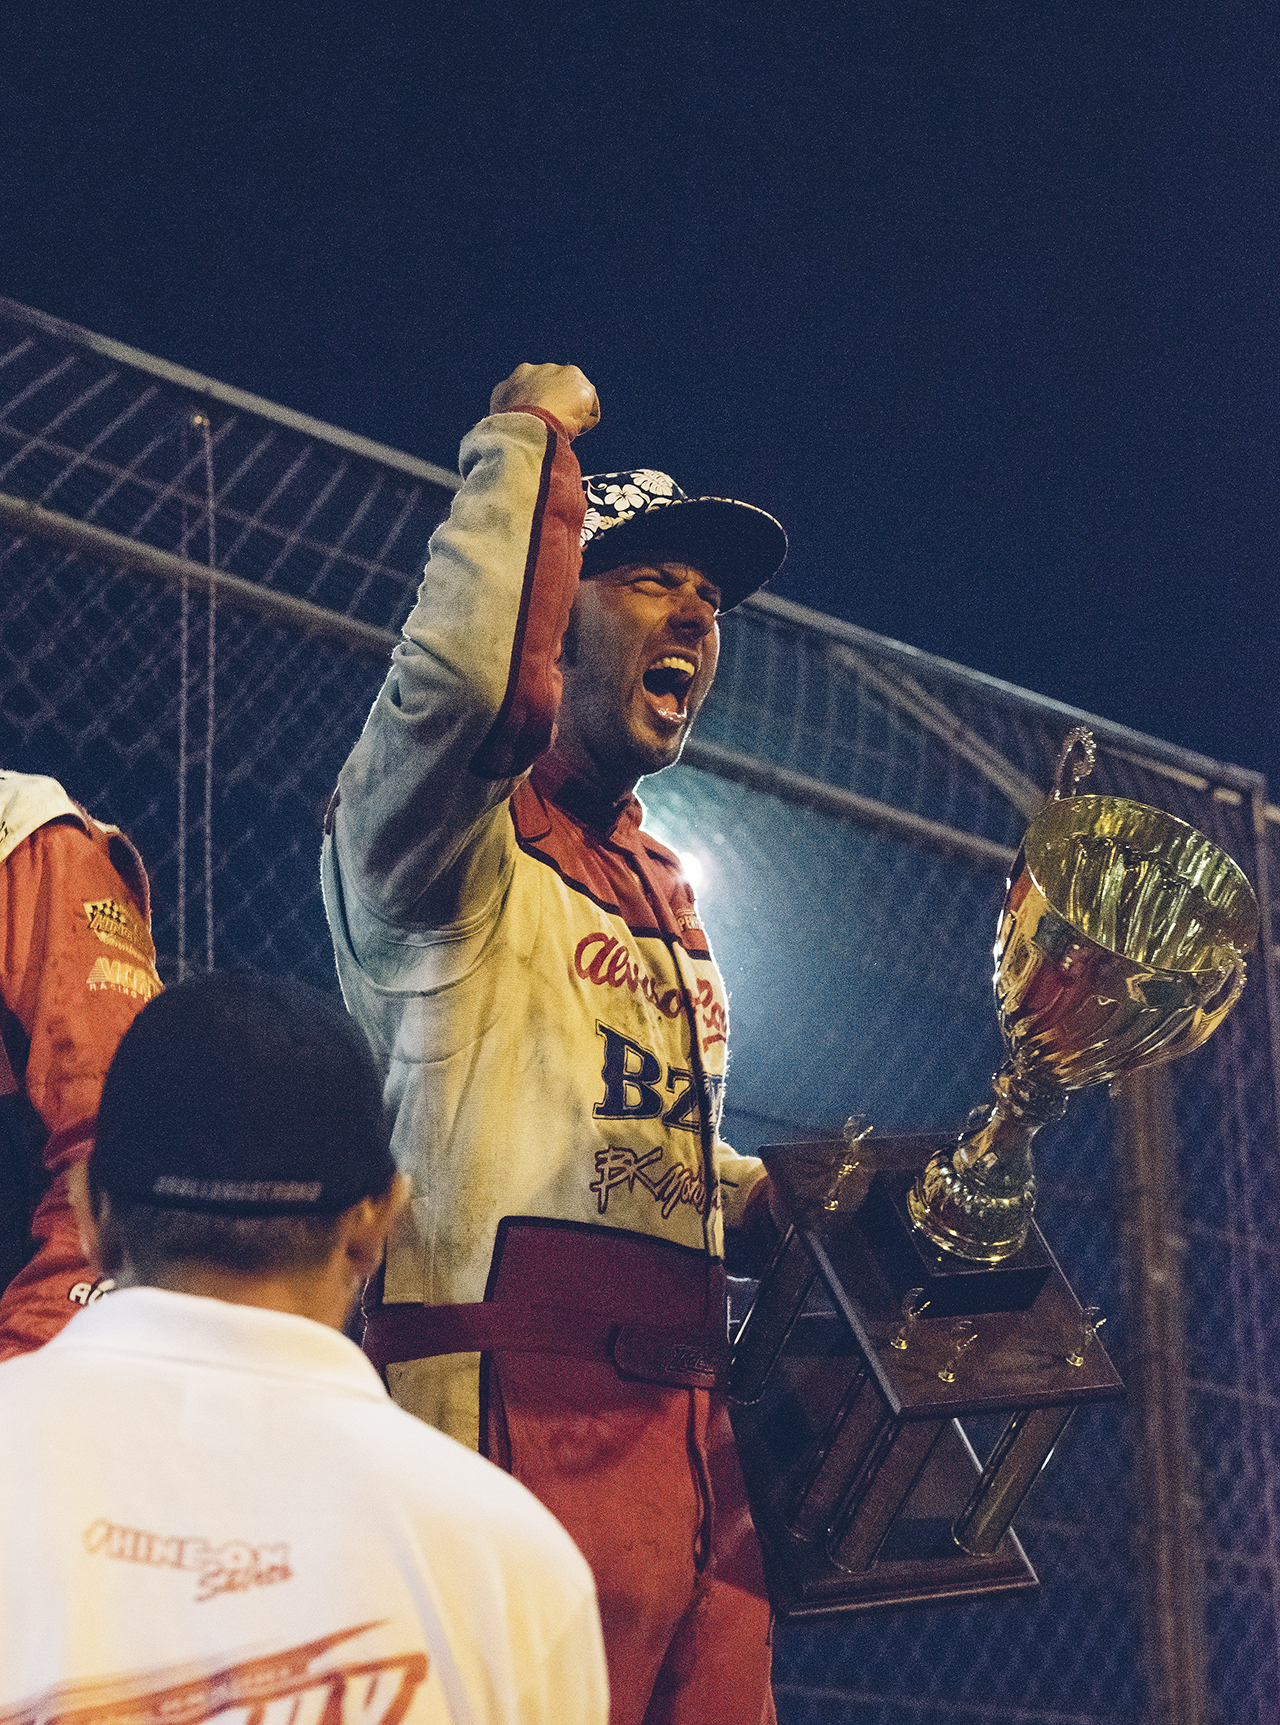 Victory is sweet. Bud whoops after winning Trophy Cup at Tulare, 2015. The Kaeding drivers have a combined total of eight victories in the prestigious event.